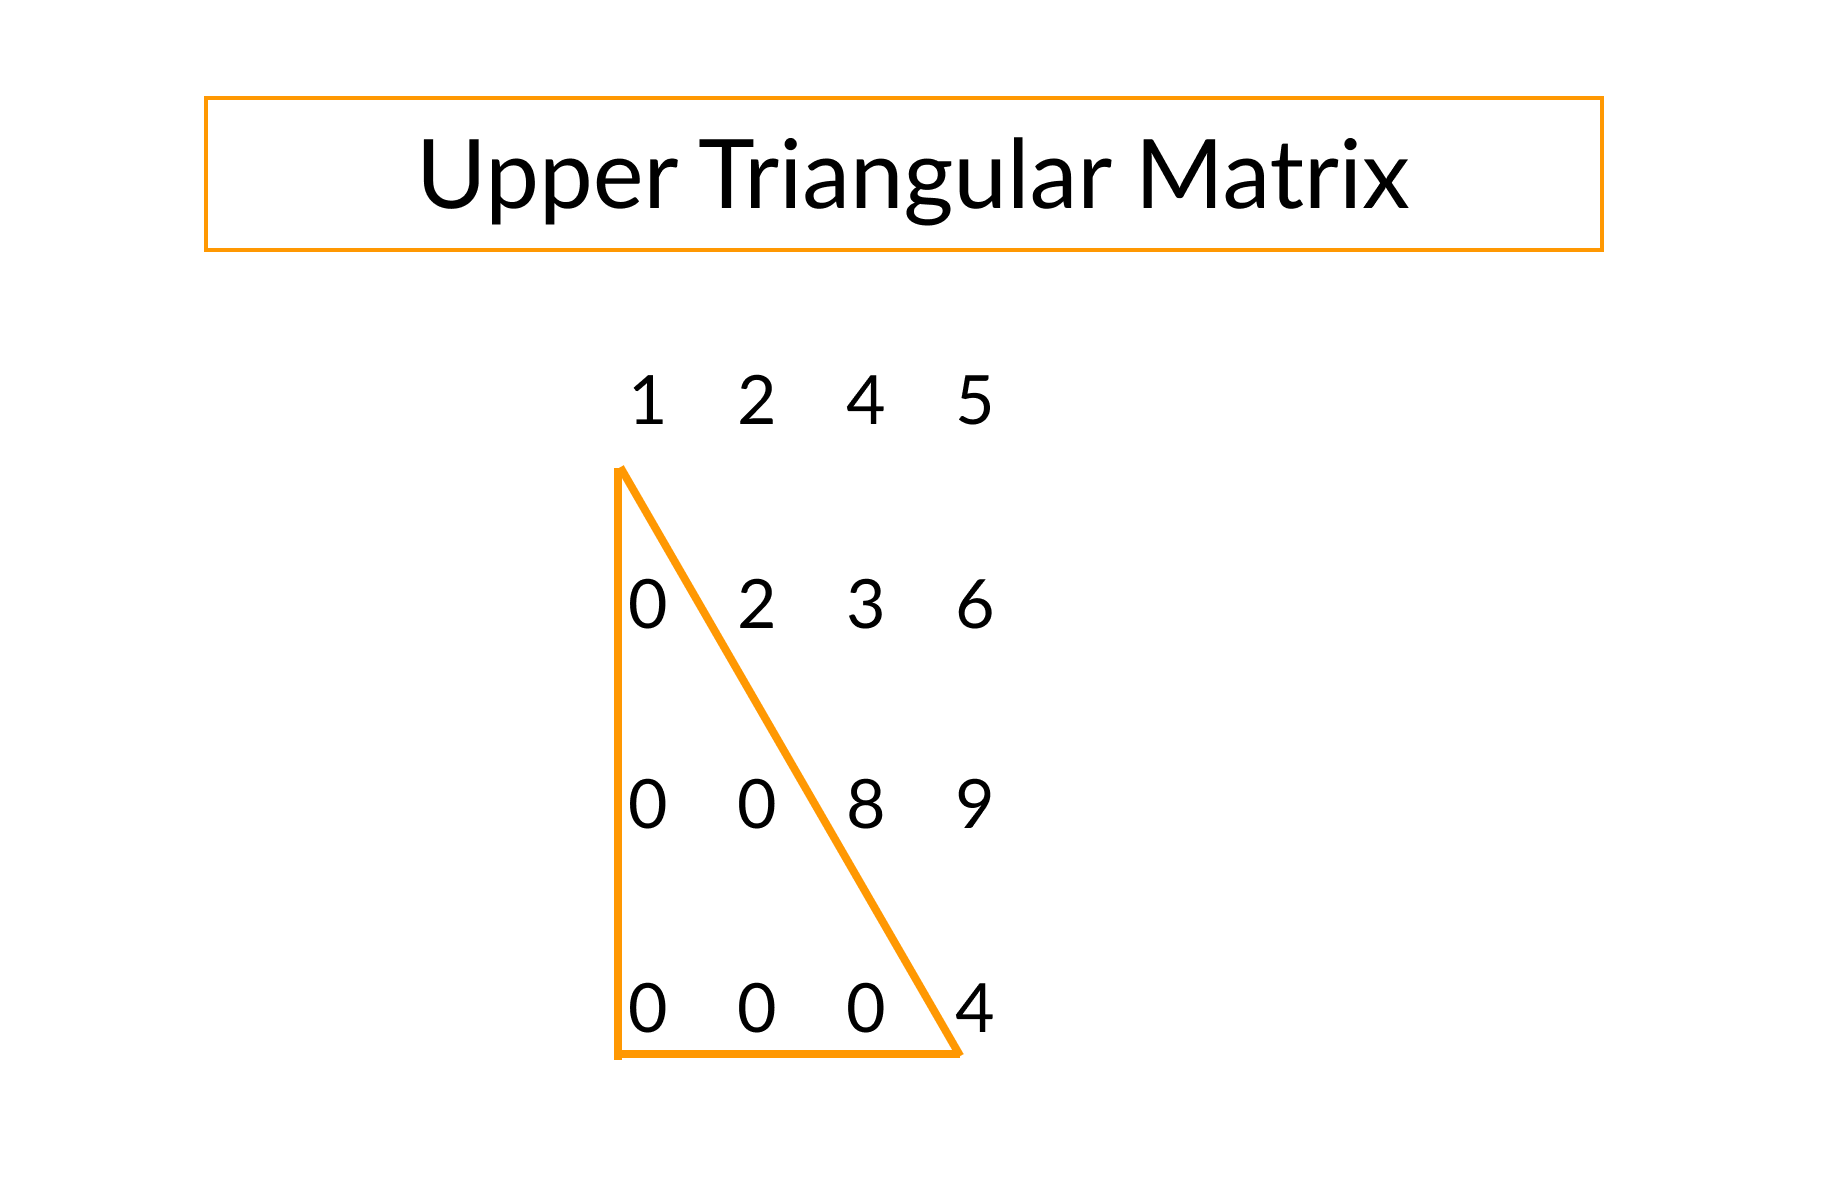 Program to find if the given matrix is upper triangular or not